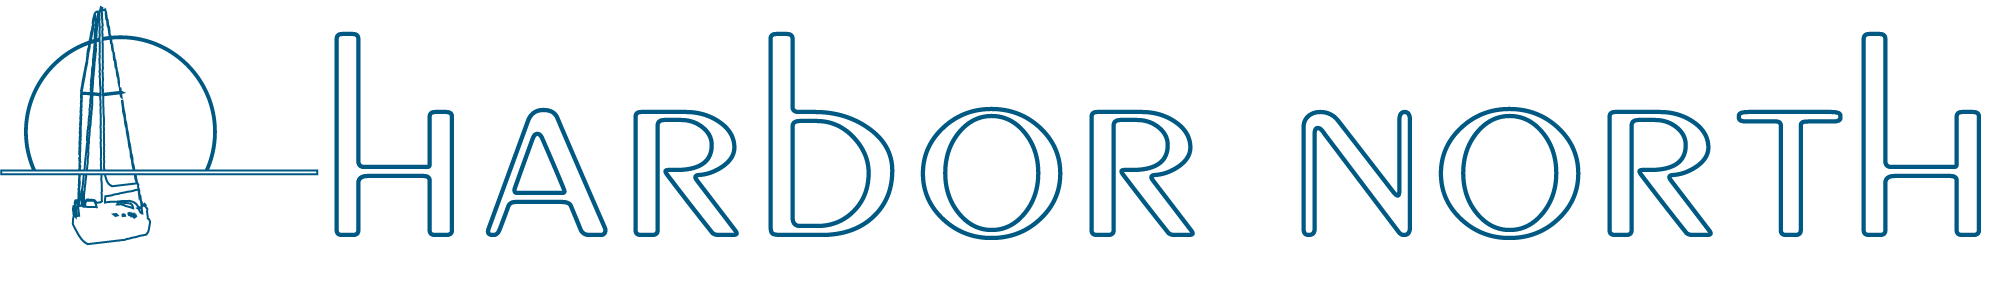 harbornorth.com logo